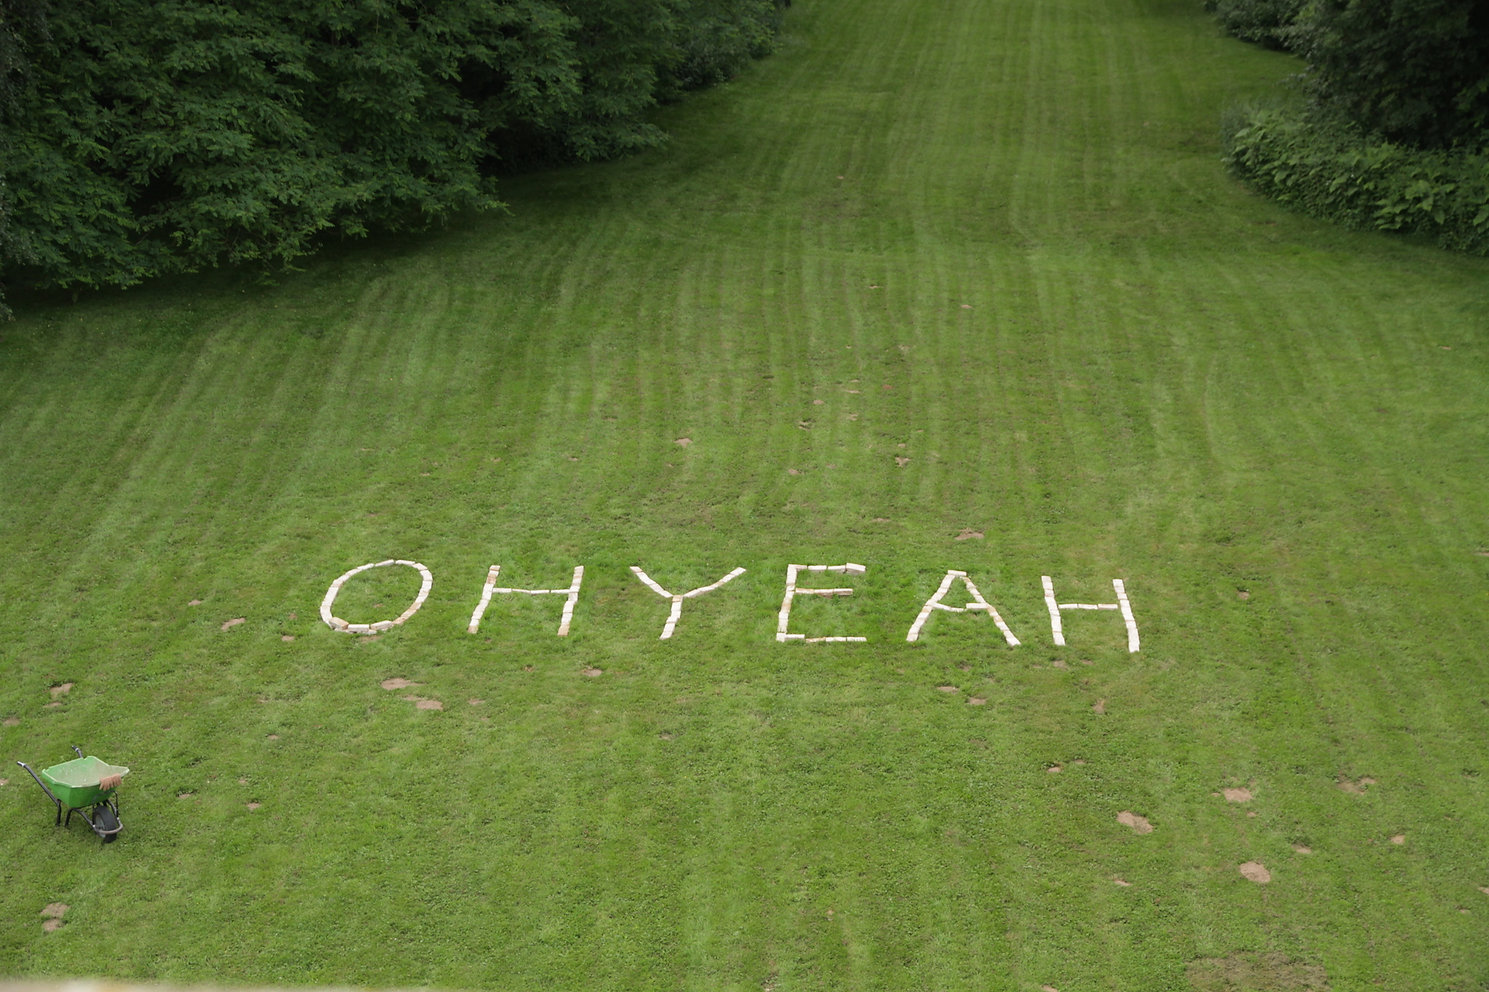 ohyeah sign on grass_residency_pompadour